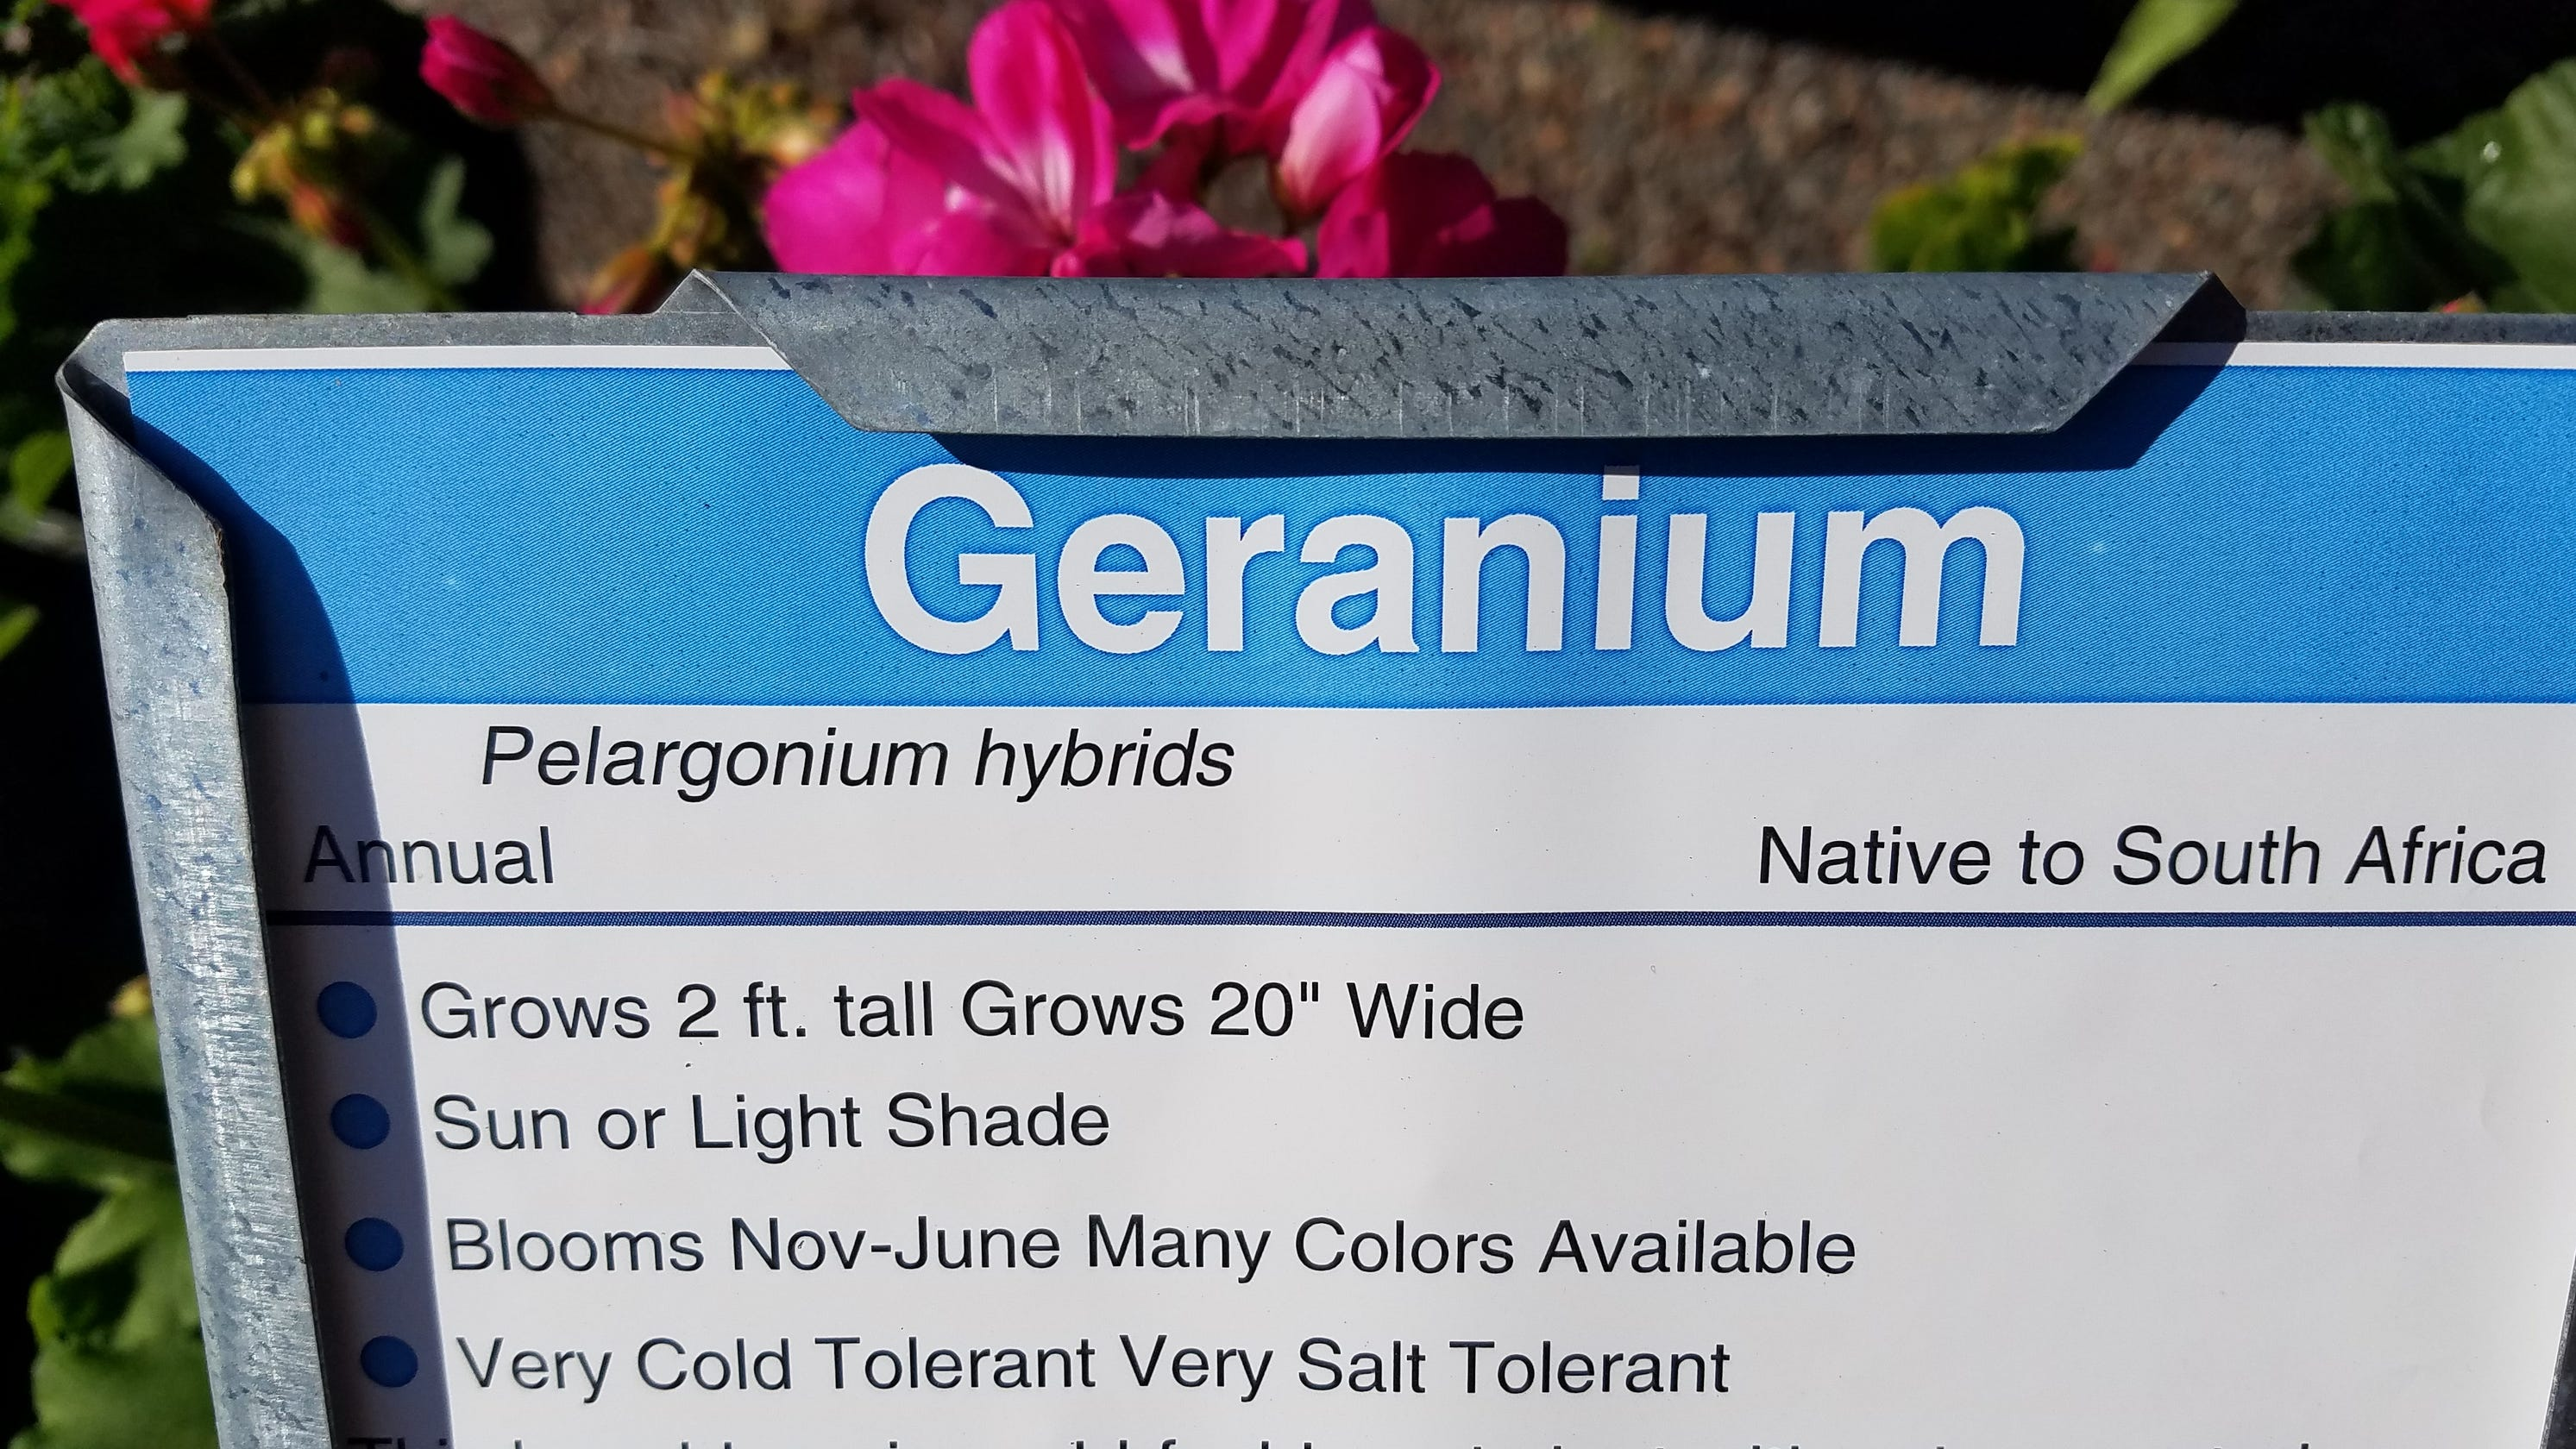 Scientific Plant Names Can Be Important Especially With Edible Plants